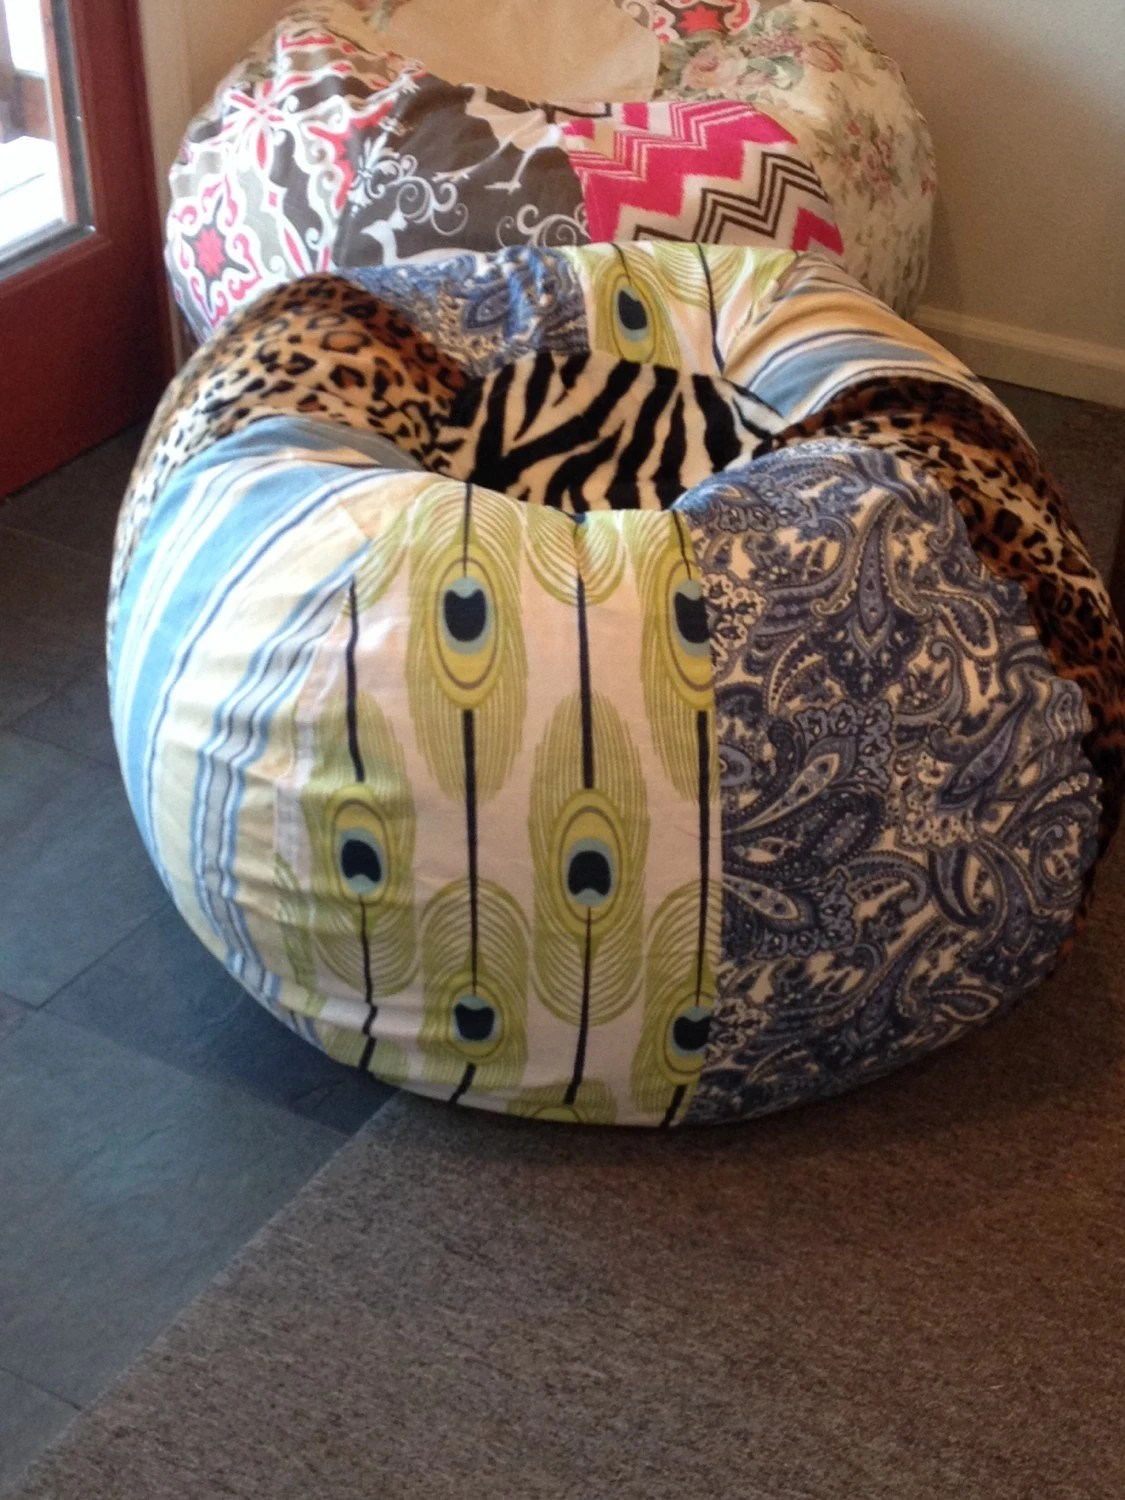 cheetah print bean bag chair hello kitty table and set multi boho with leopard peacock feather by